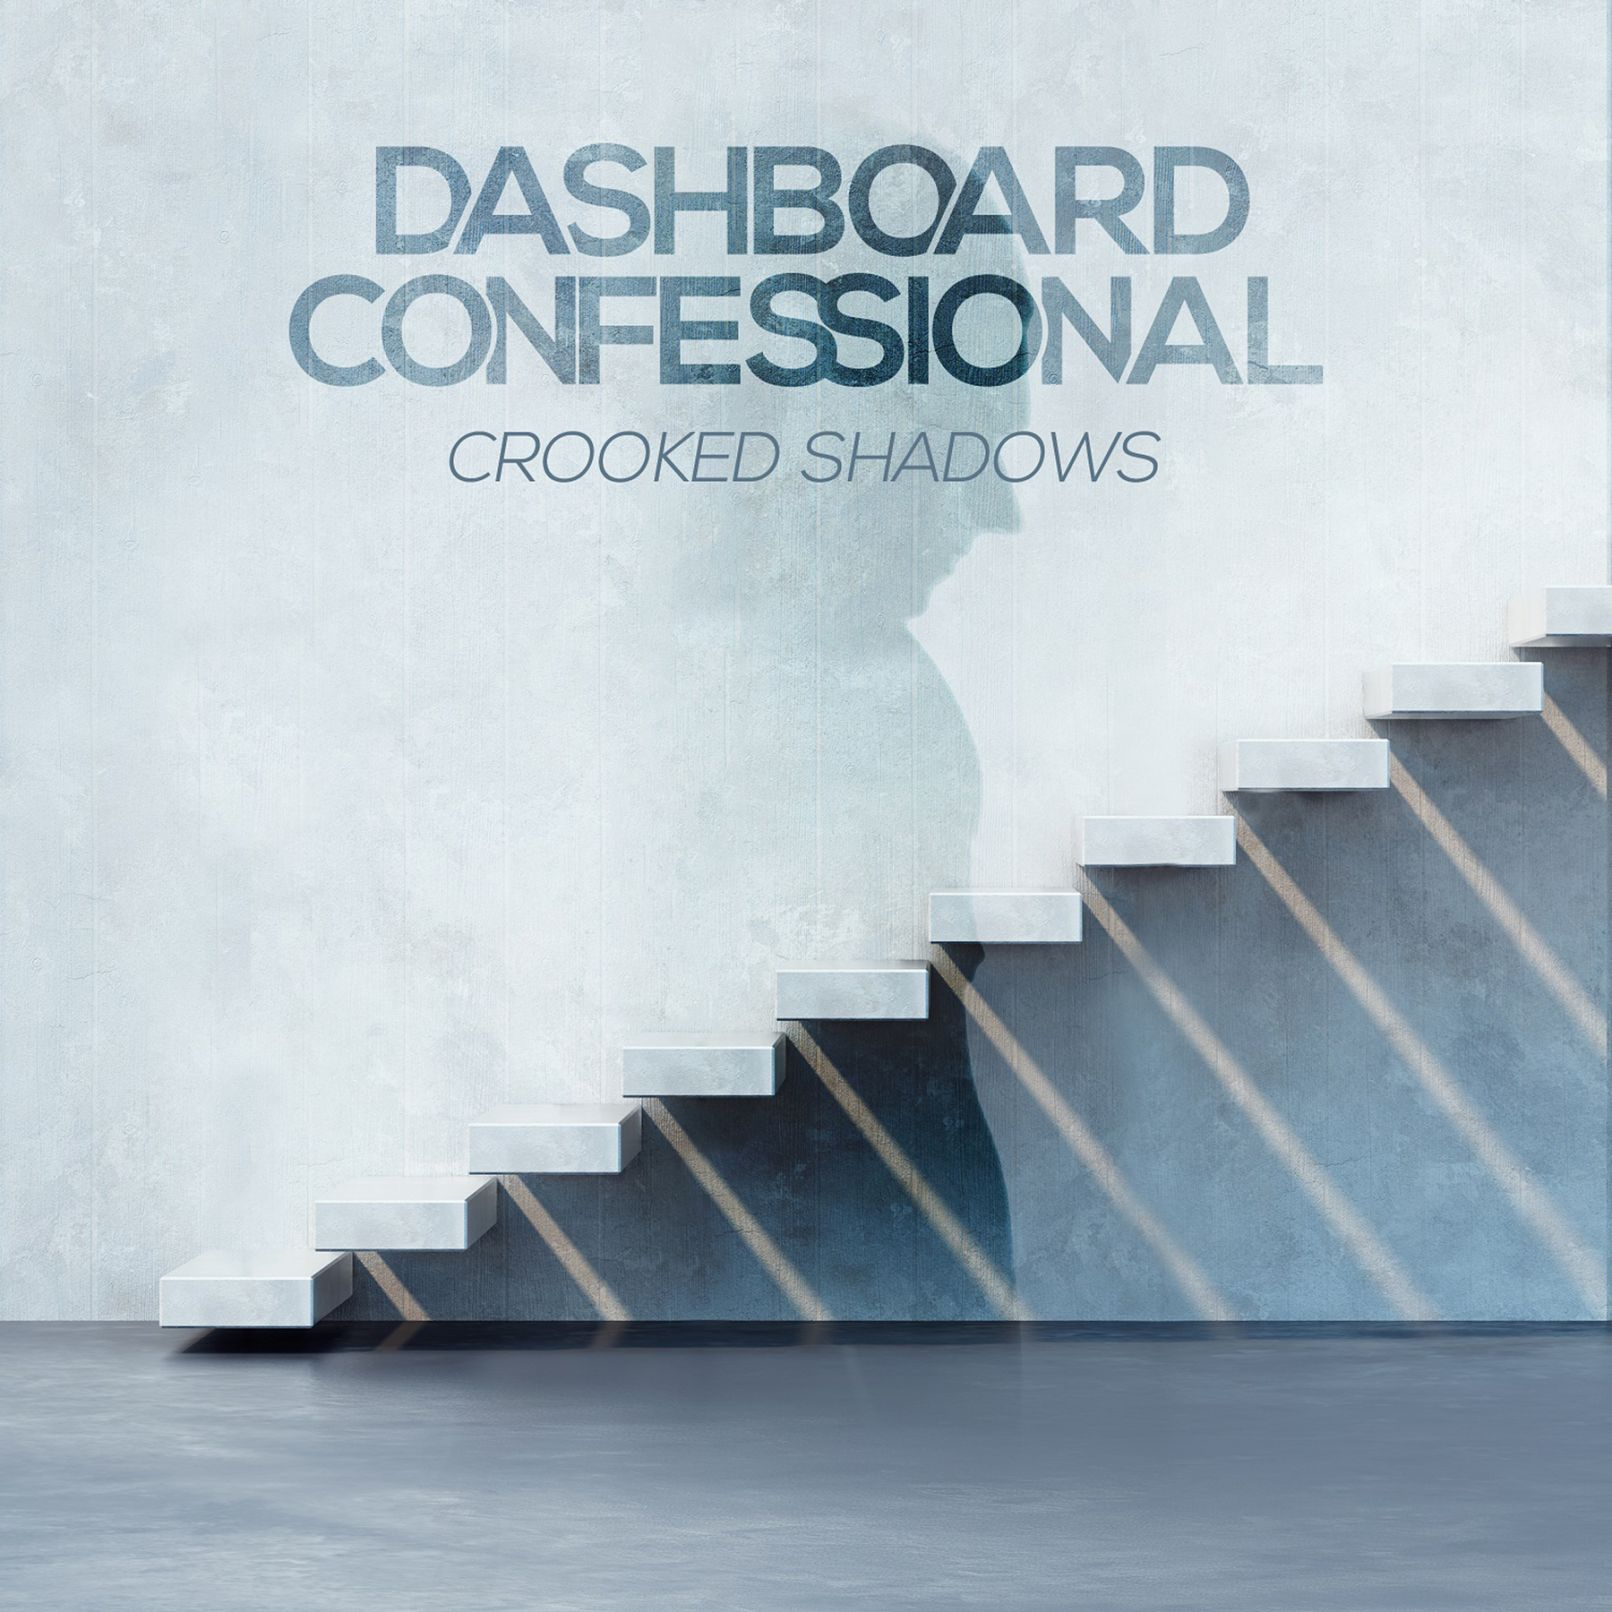 DASHBOARD CONFESSIONAL / Crooked Shadows